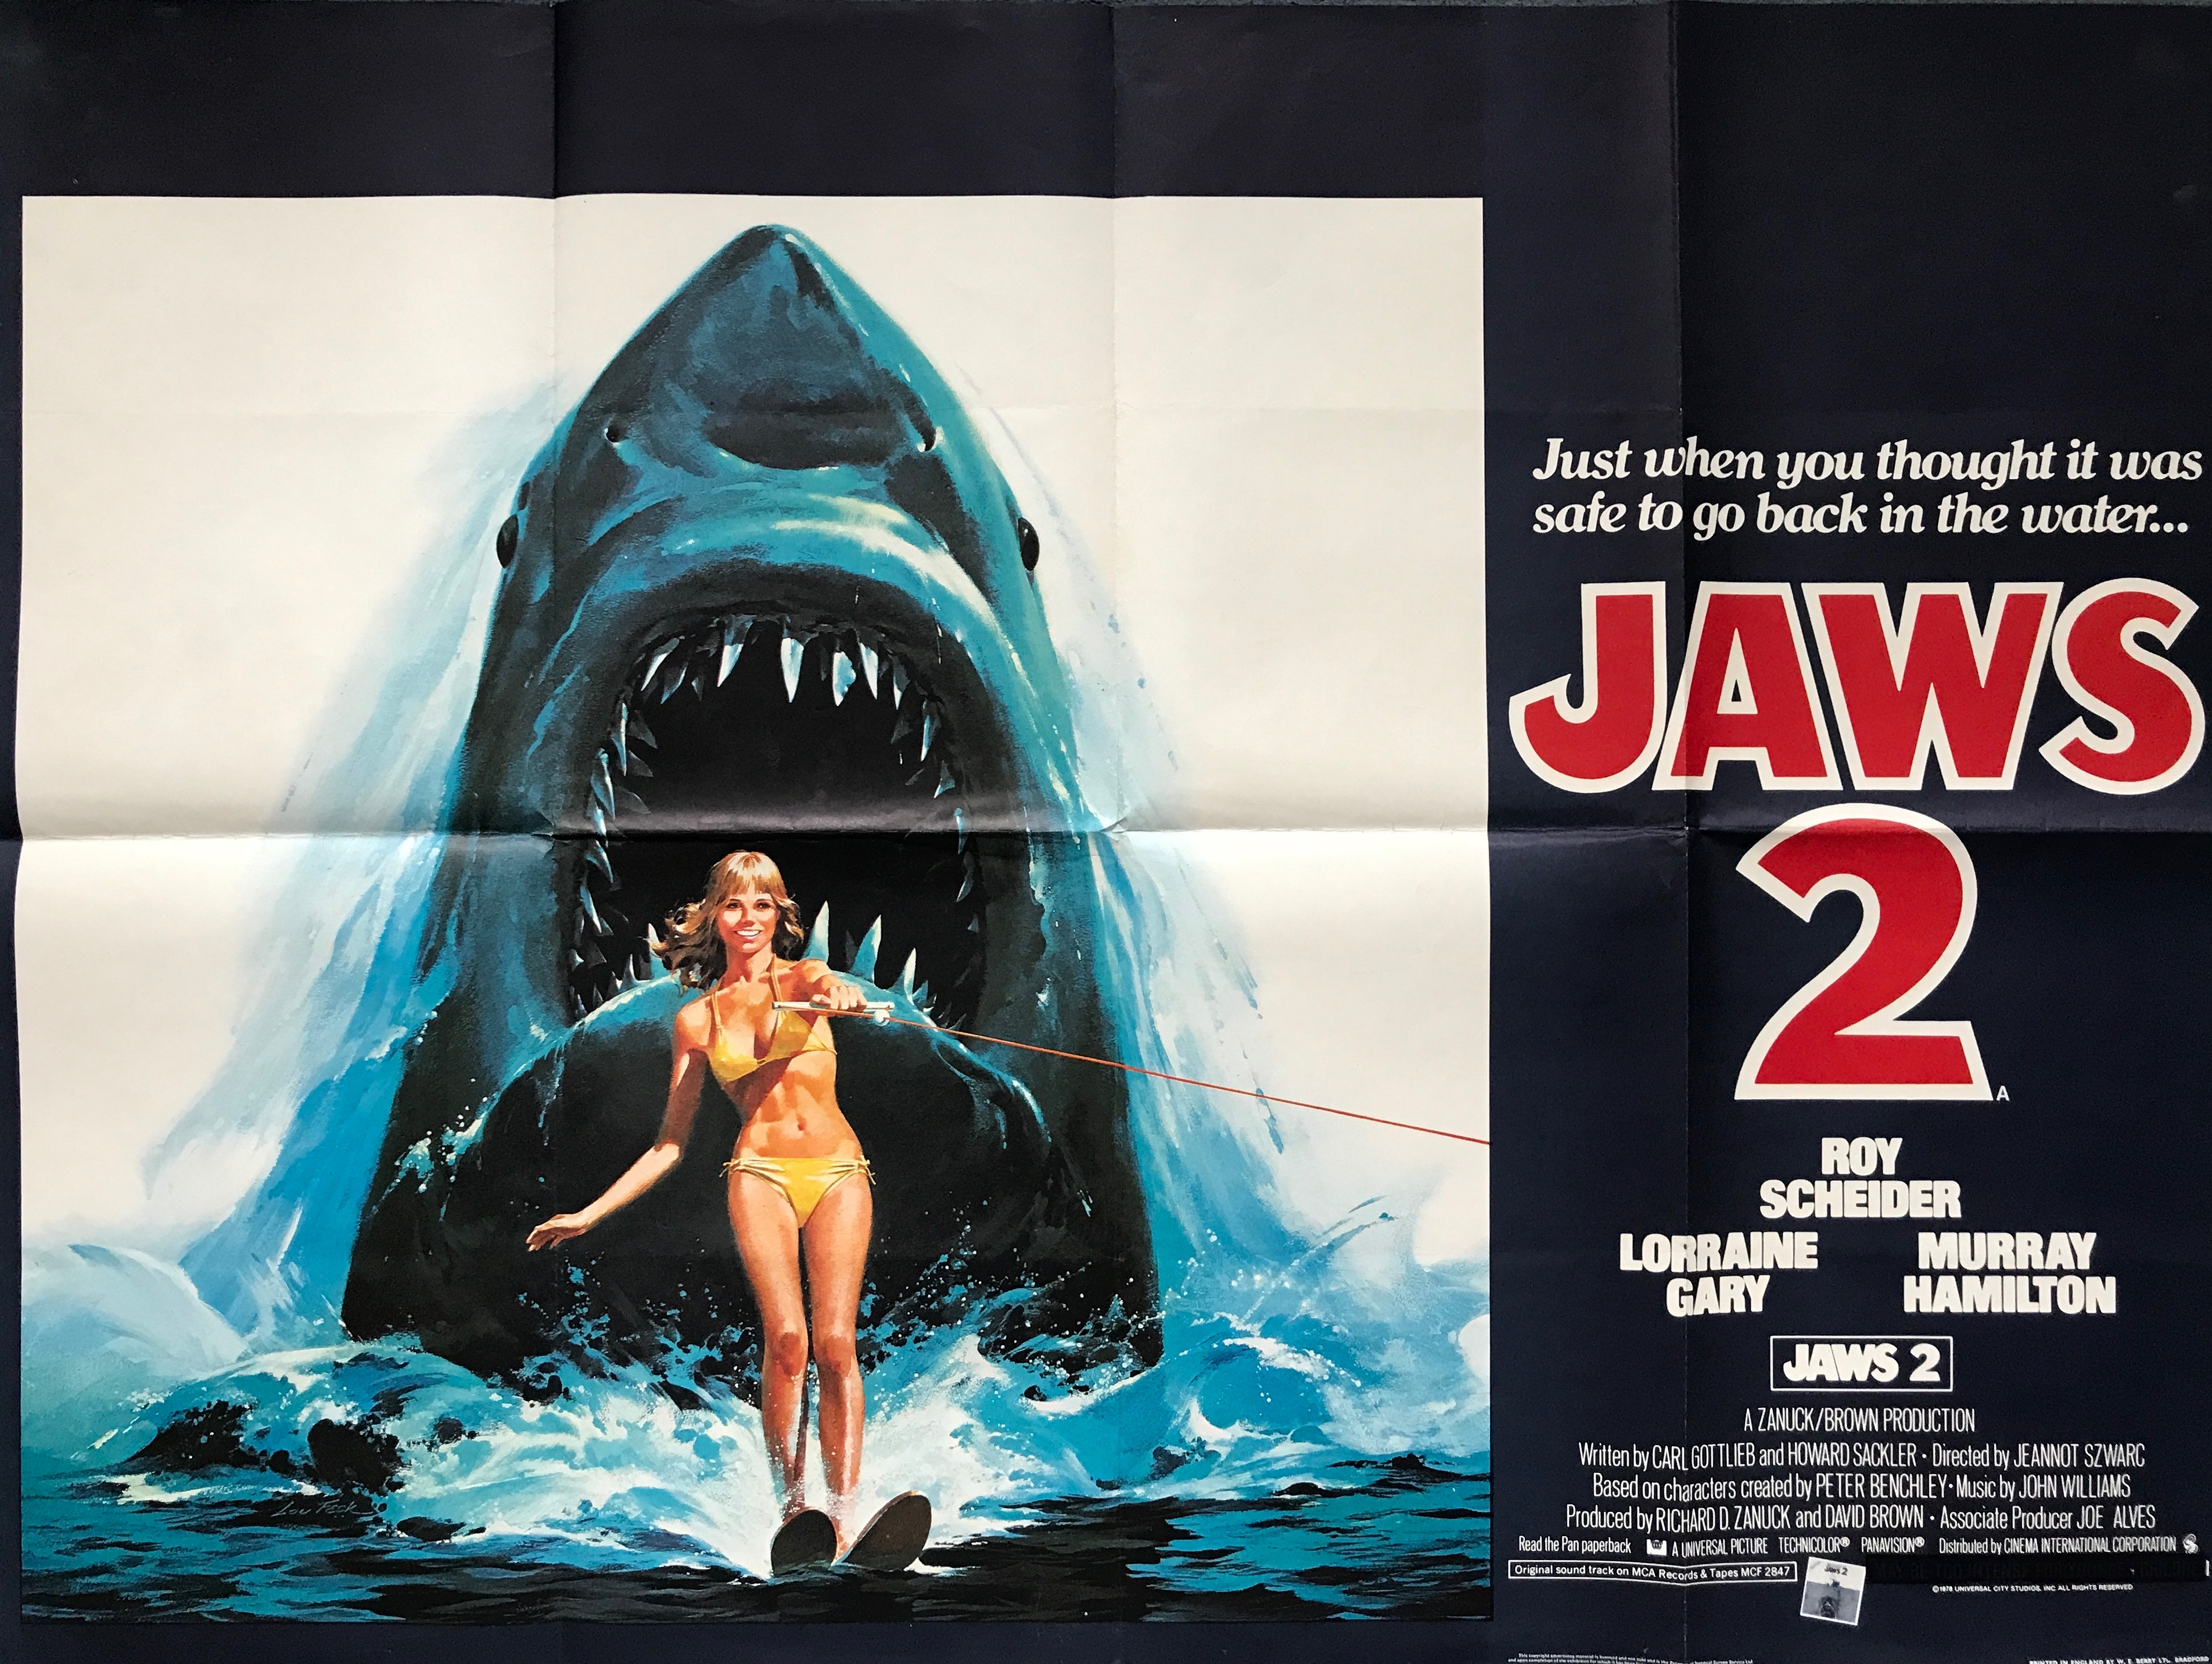 Jaws 2 movie poster - rare vintage film posters